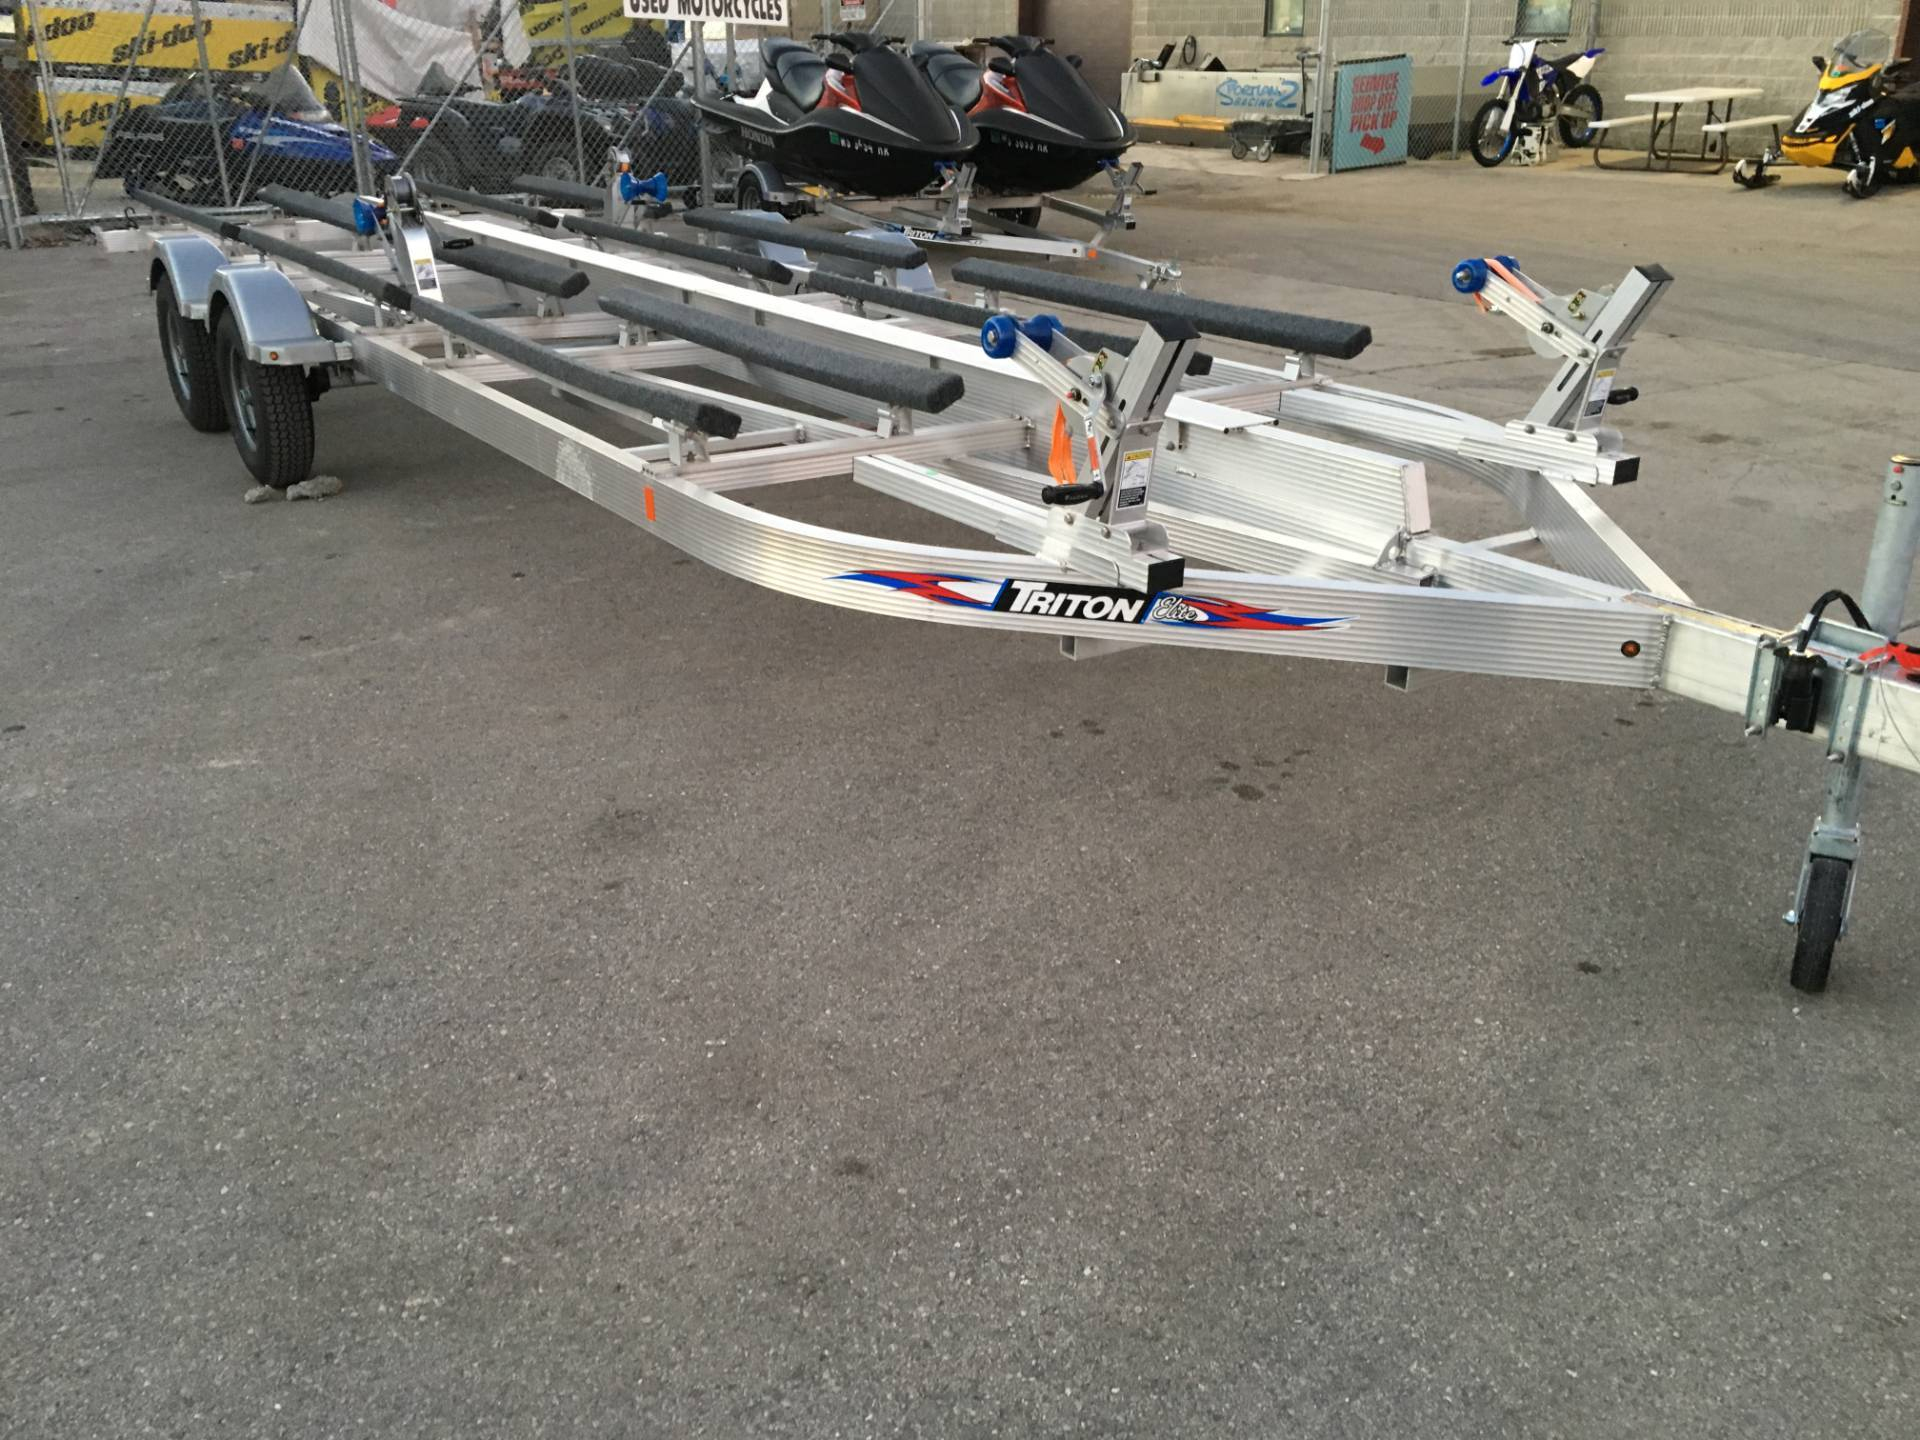 Remarkable Triton Snowmobile Trailer Wiring Diagram Wiring Diagram Wiring Digital Resources Funapmognl